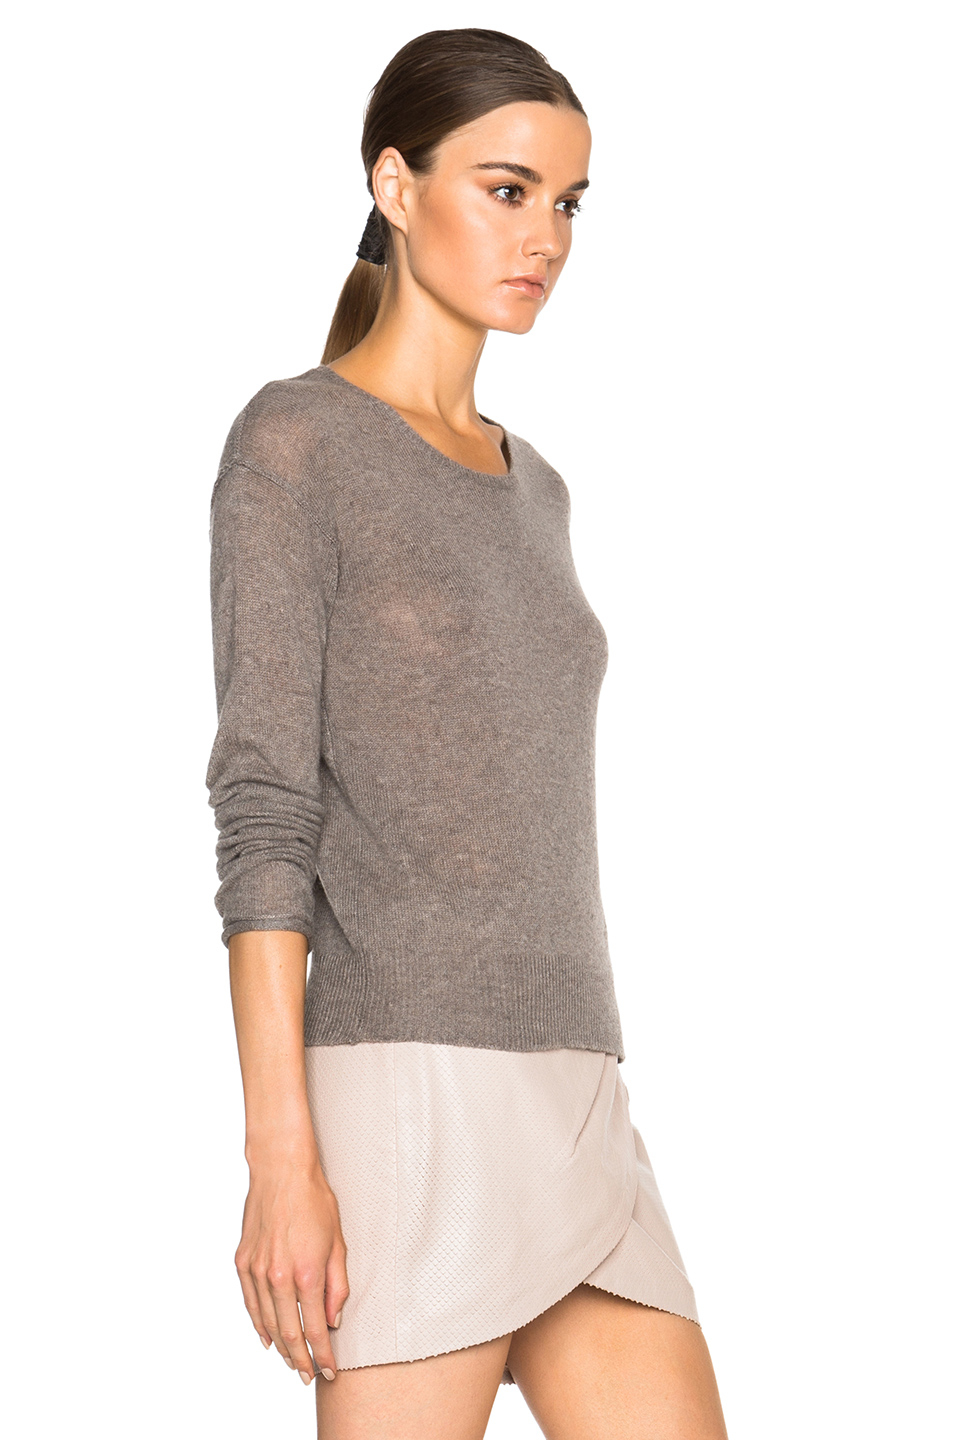 James Perse Cashmere Crewneck Sweater In Brown Lyst